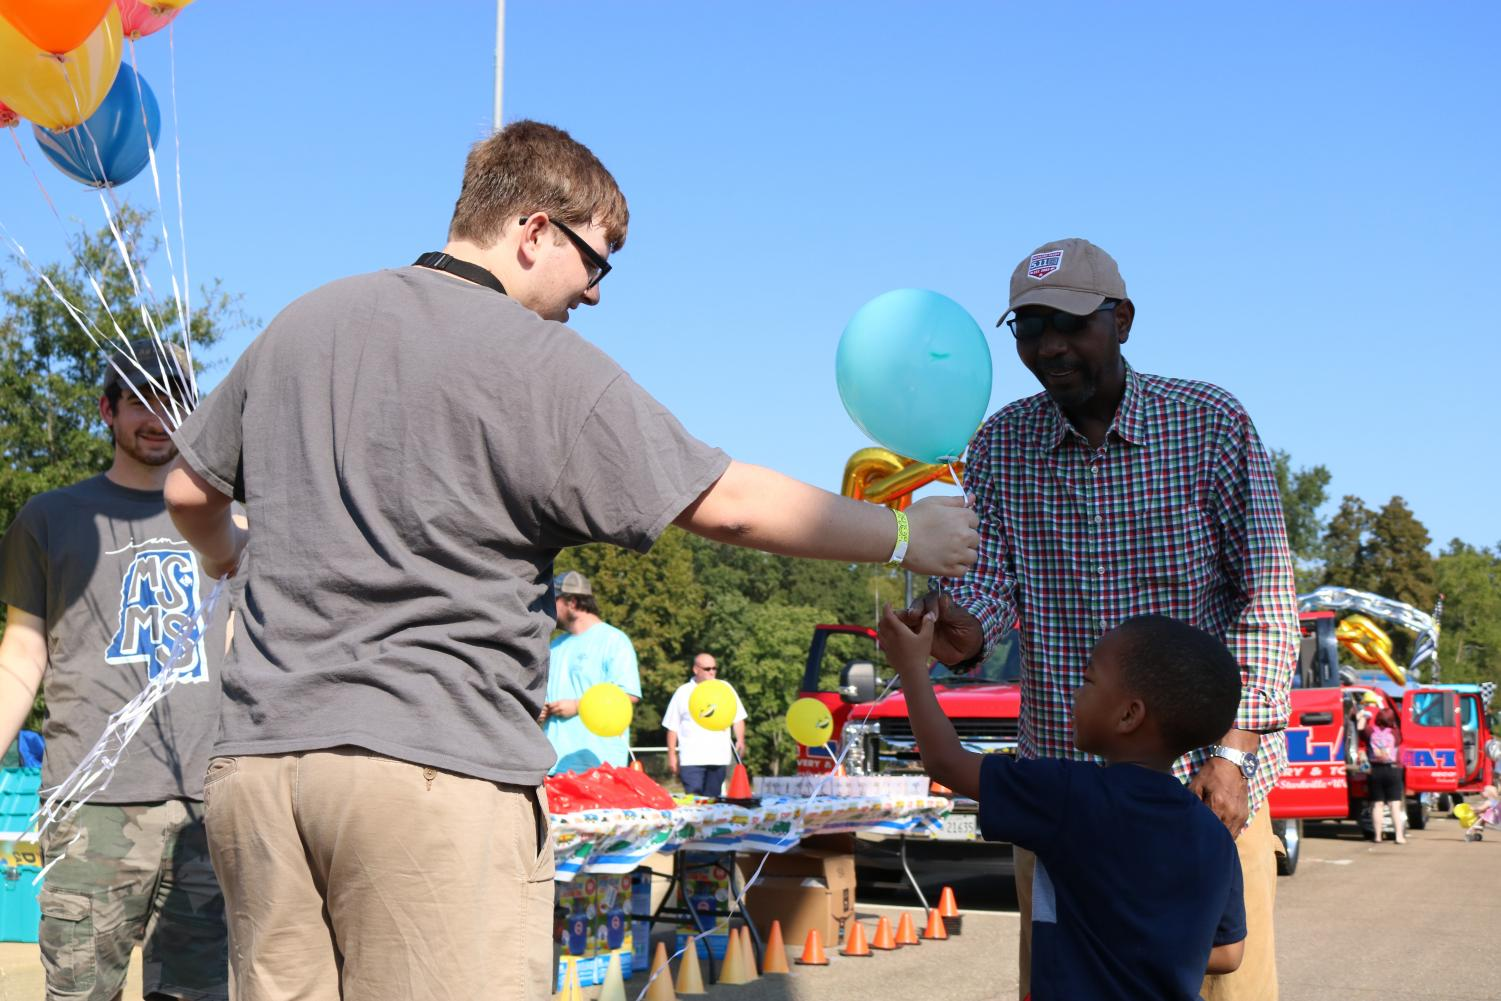 Junior David Gipson (16) hands out balloons for the children.